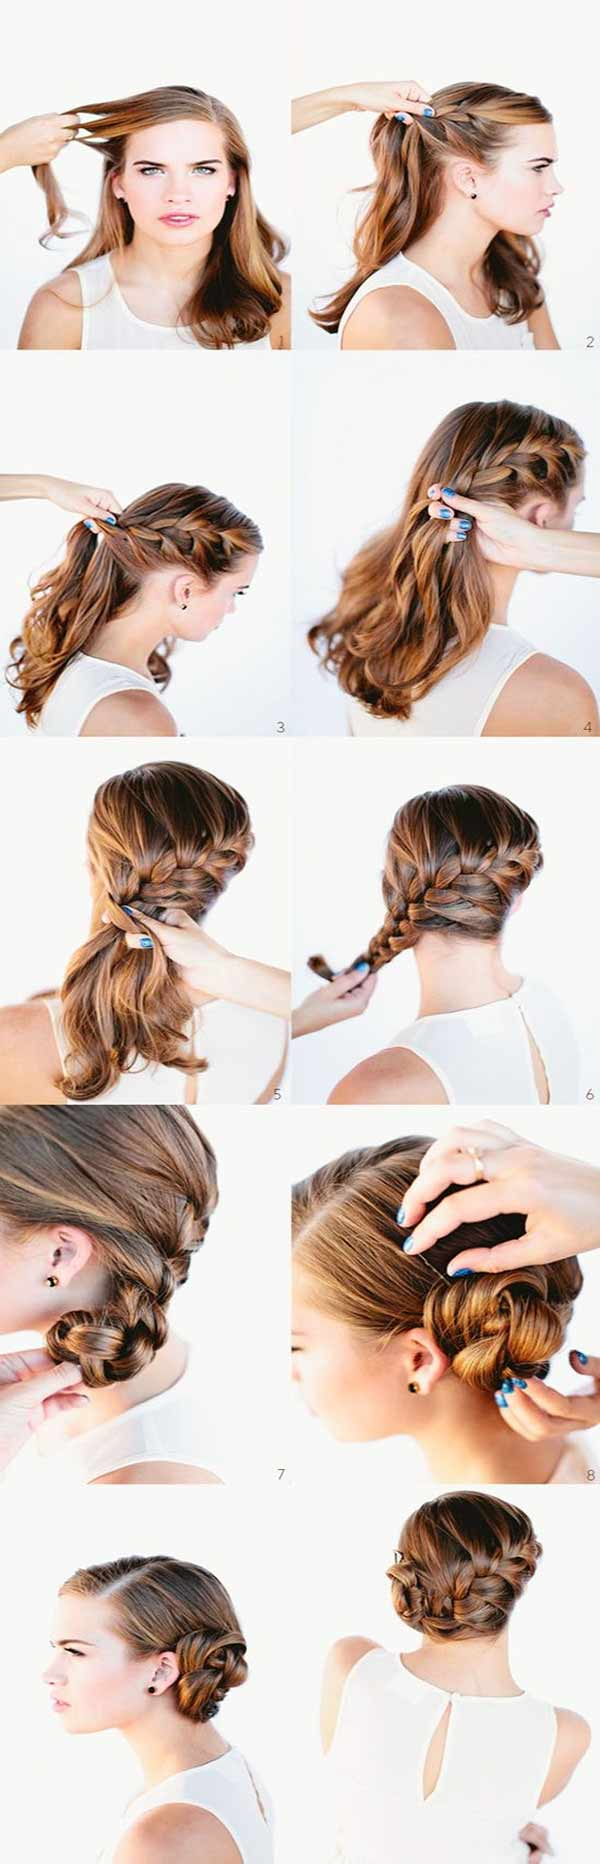 Braid and side bun